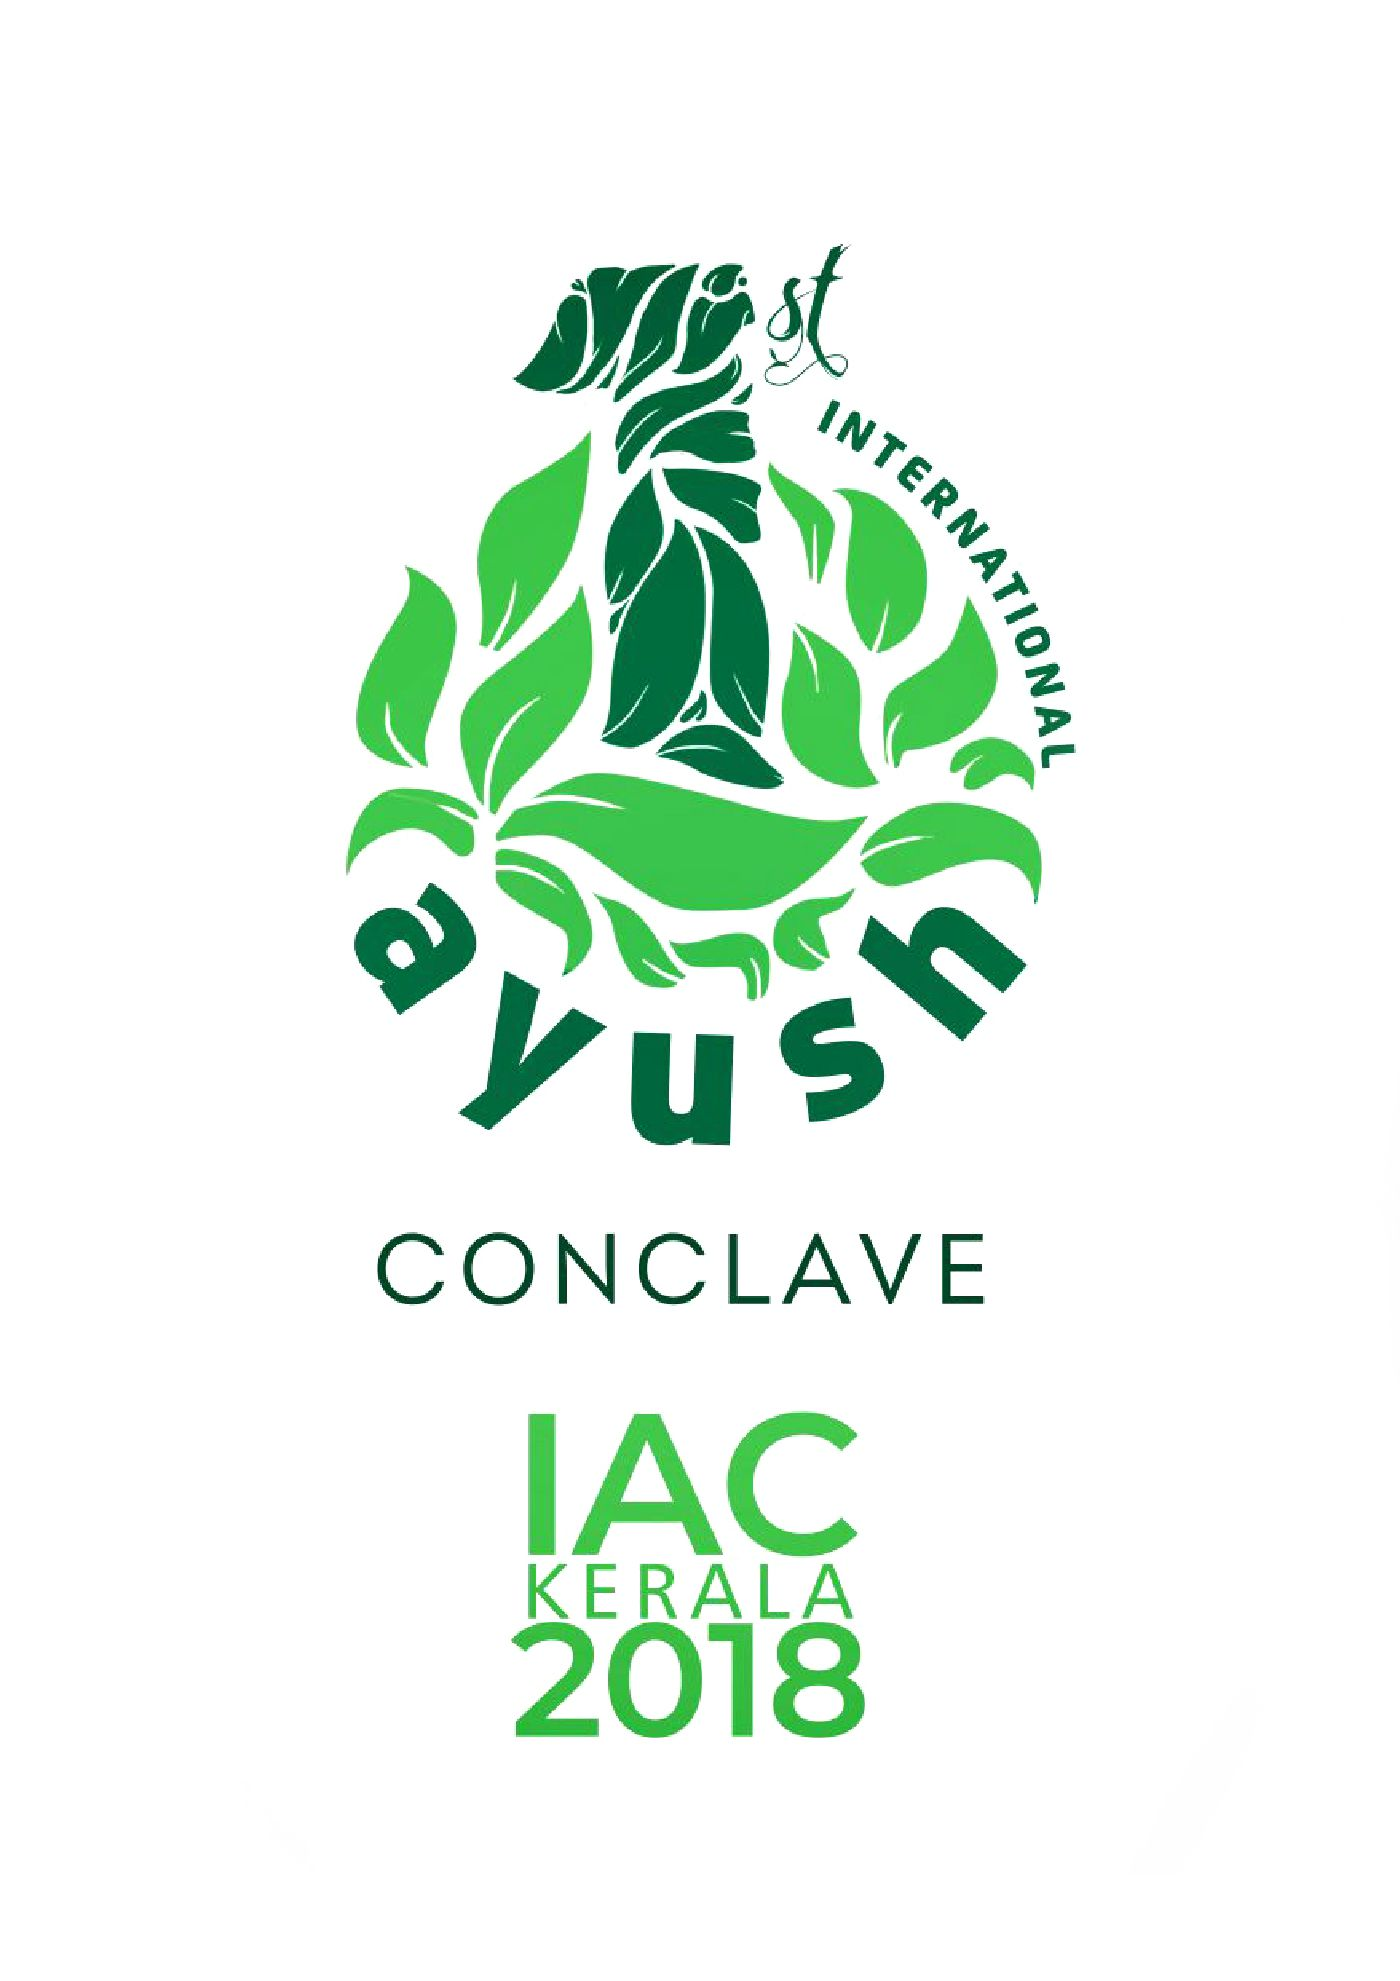 Kerala, home to 1st International AYUSH Conclave